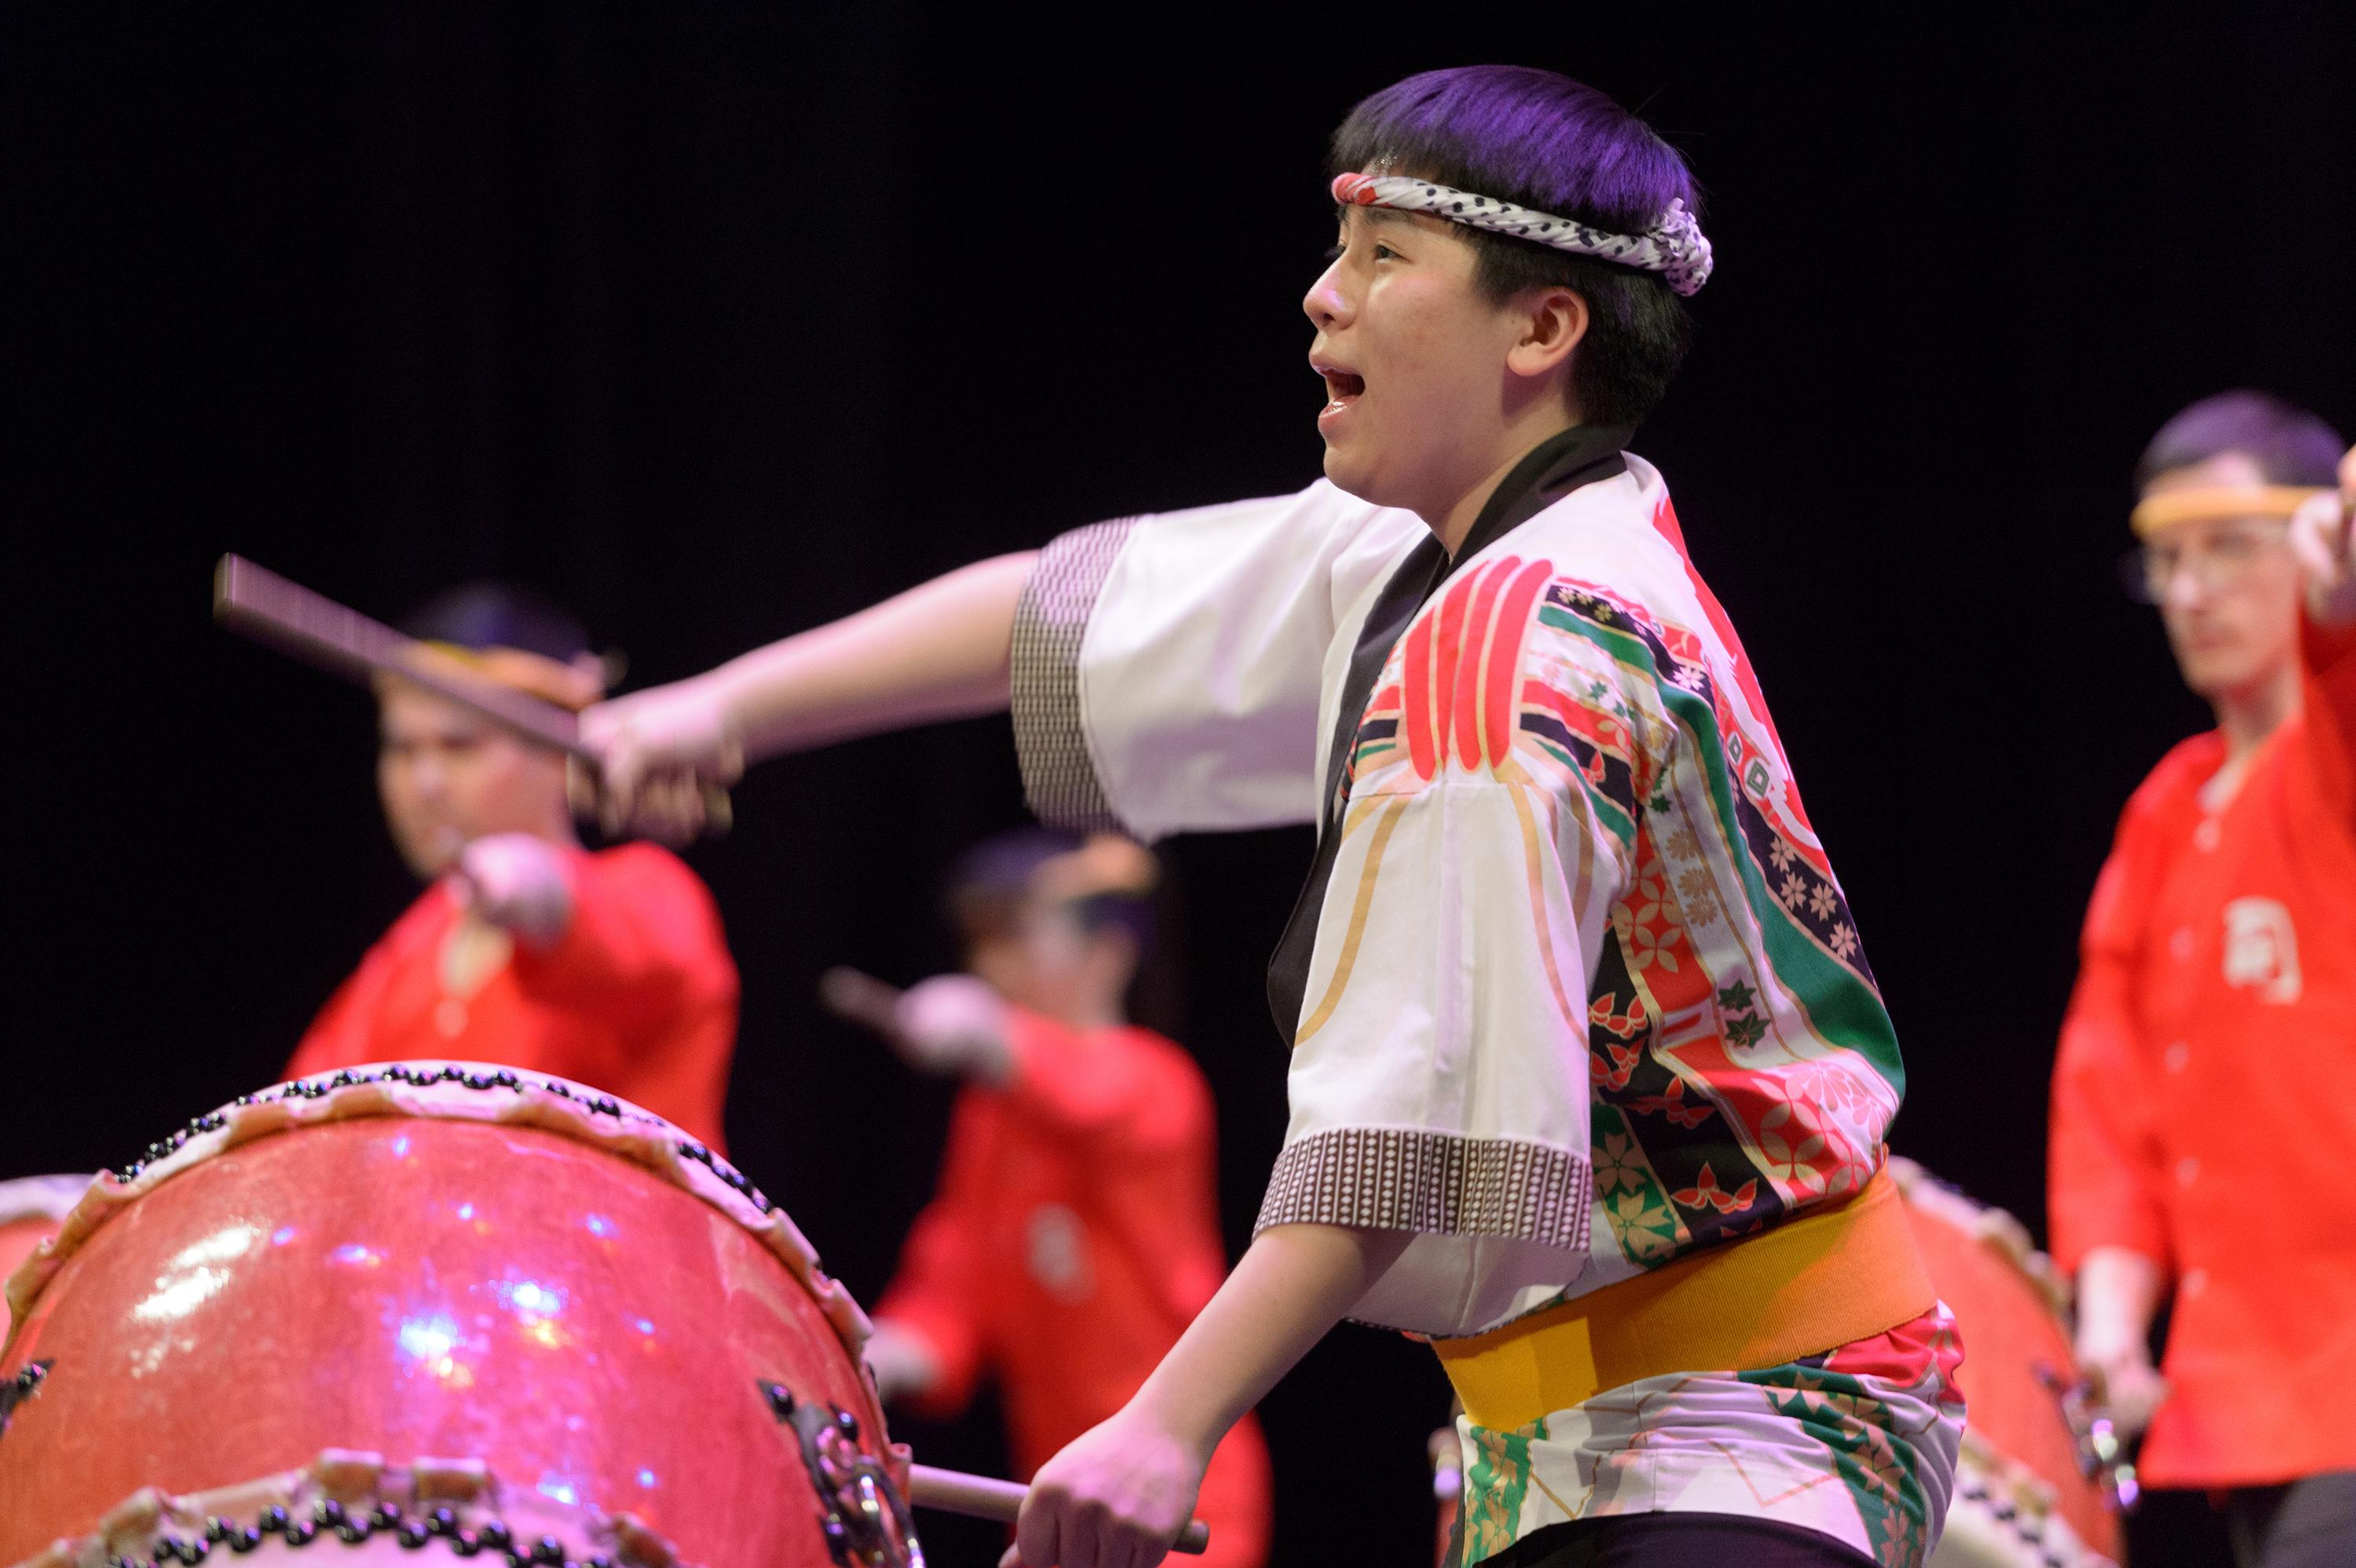 A man wearing a head band and traditional Japanese dress strikes a drum while singing.